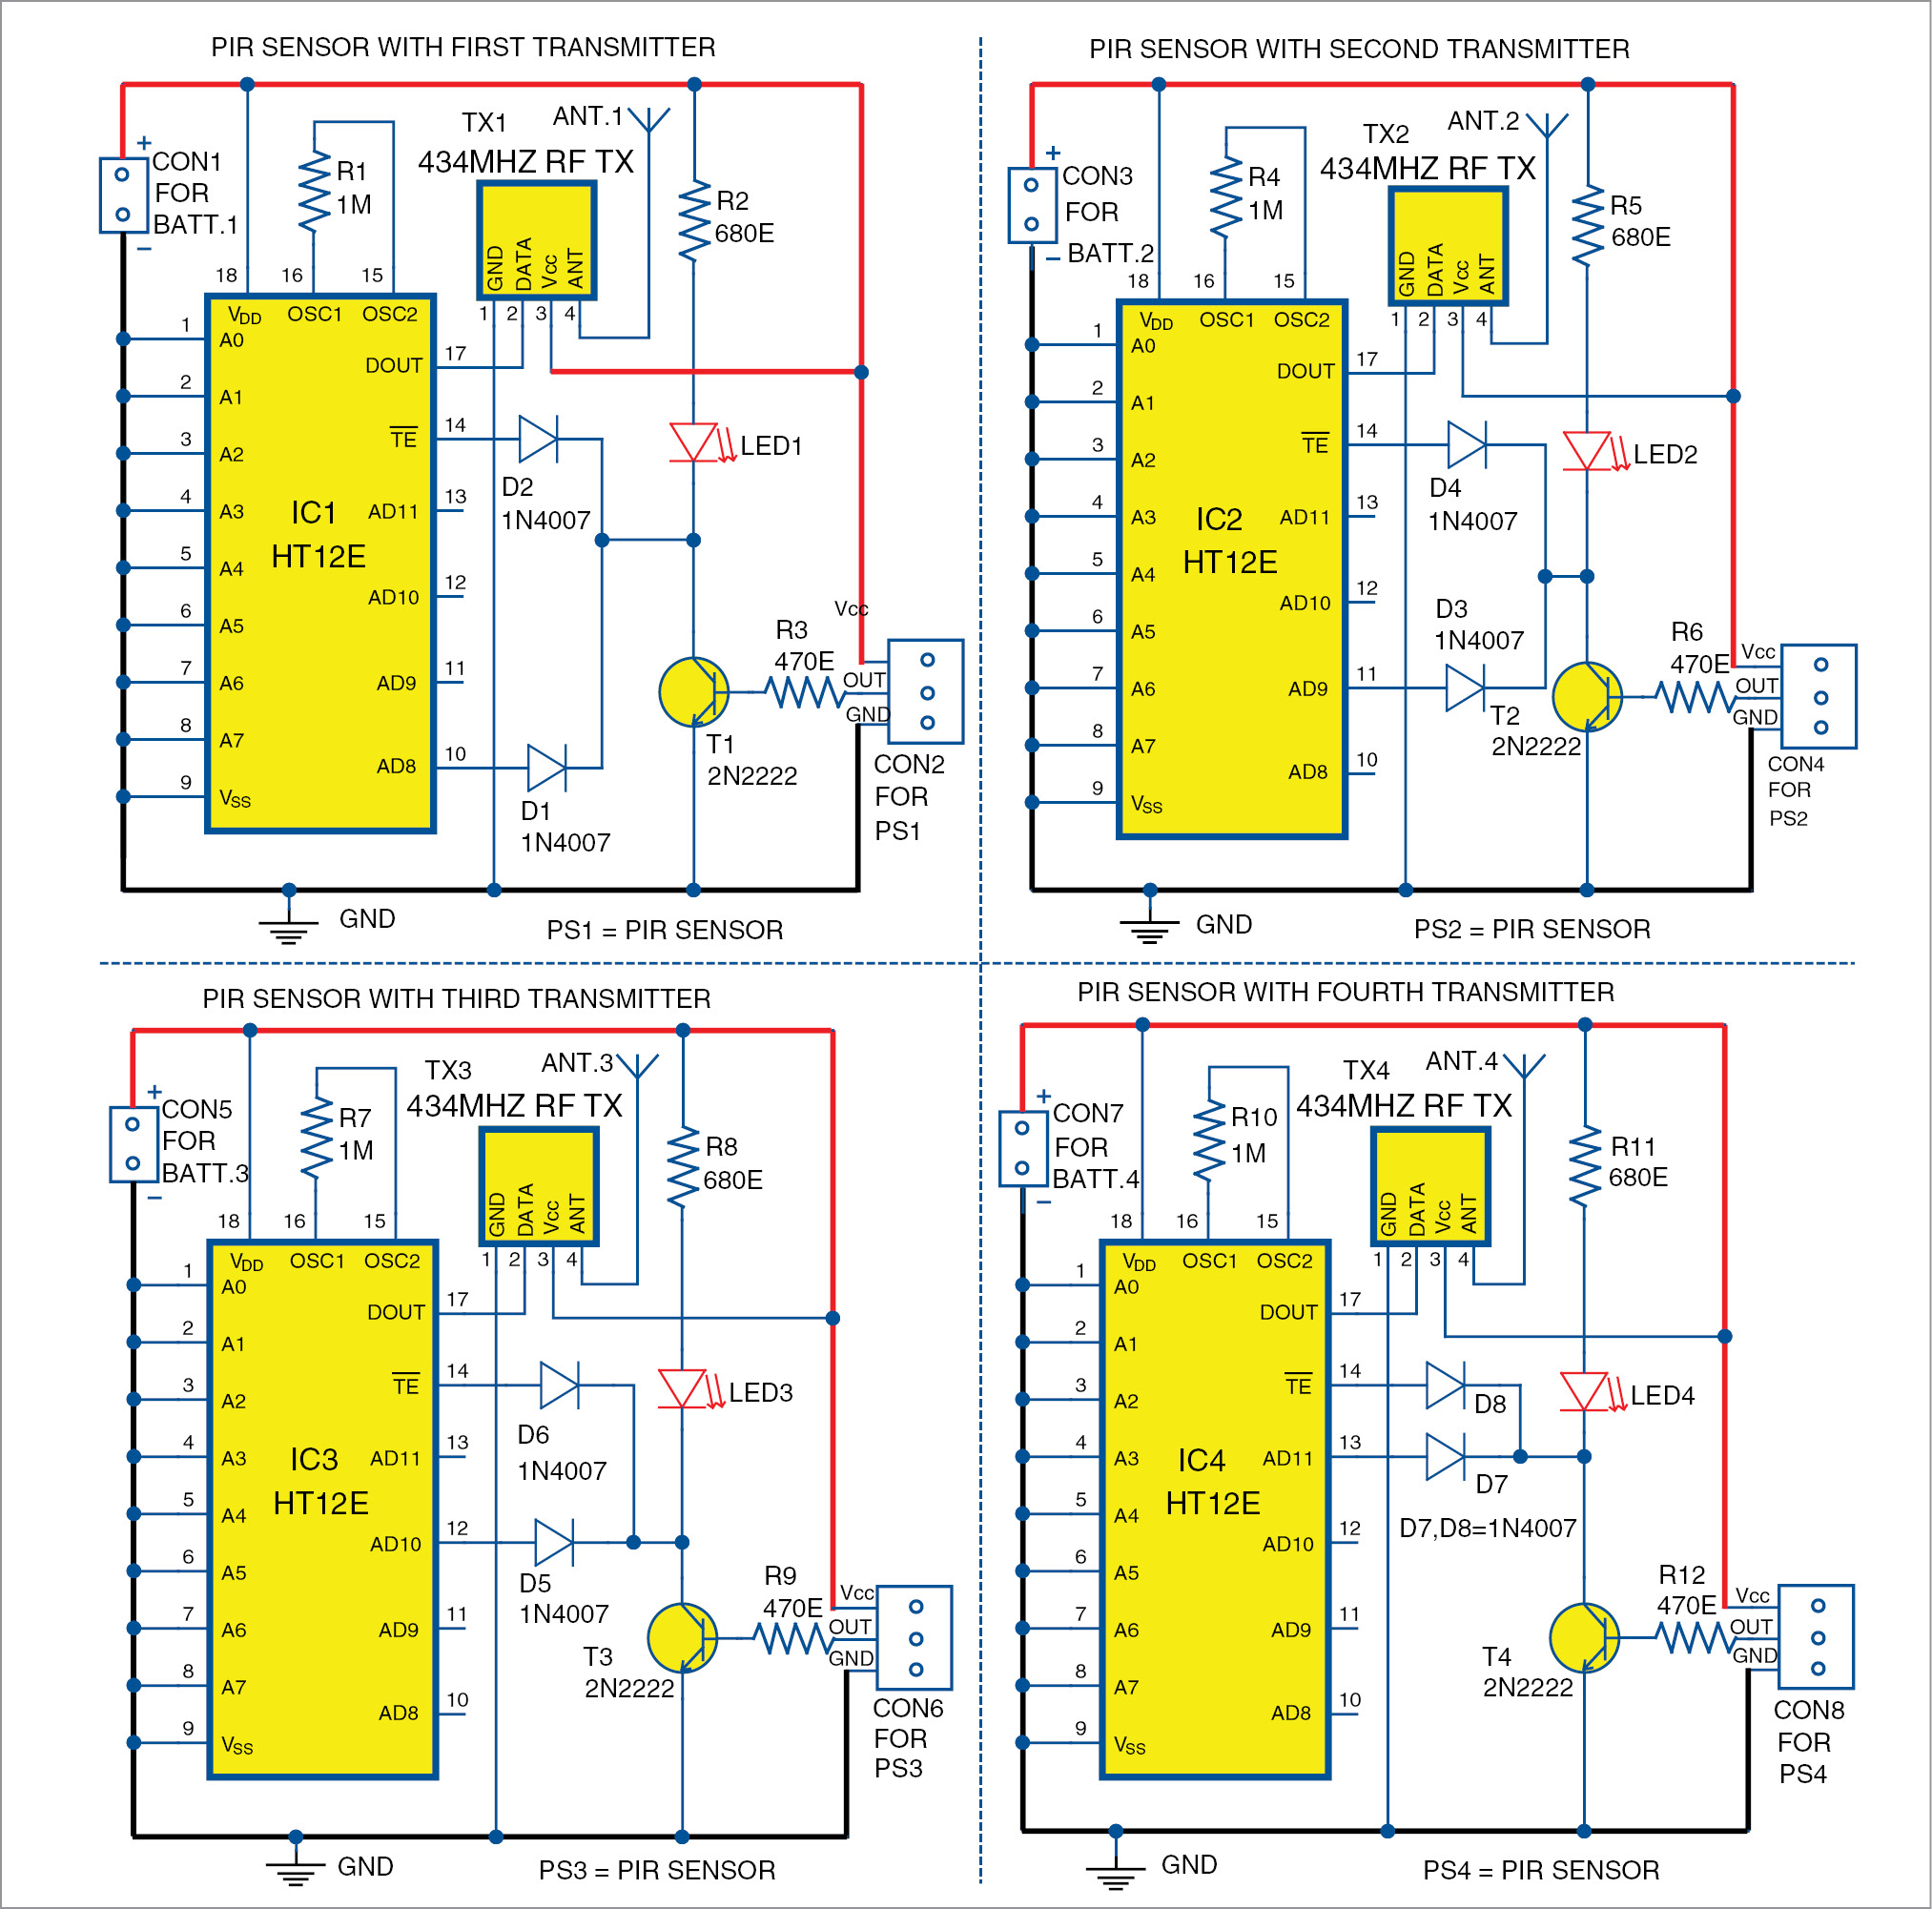 The four transmitter circuits